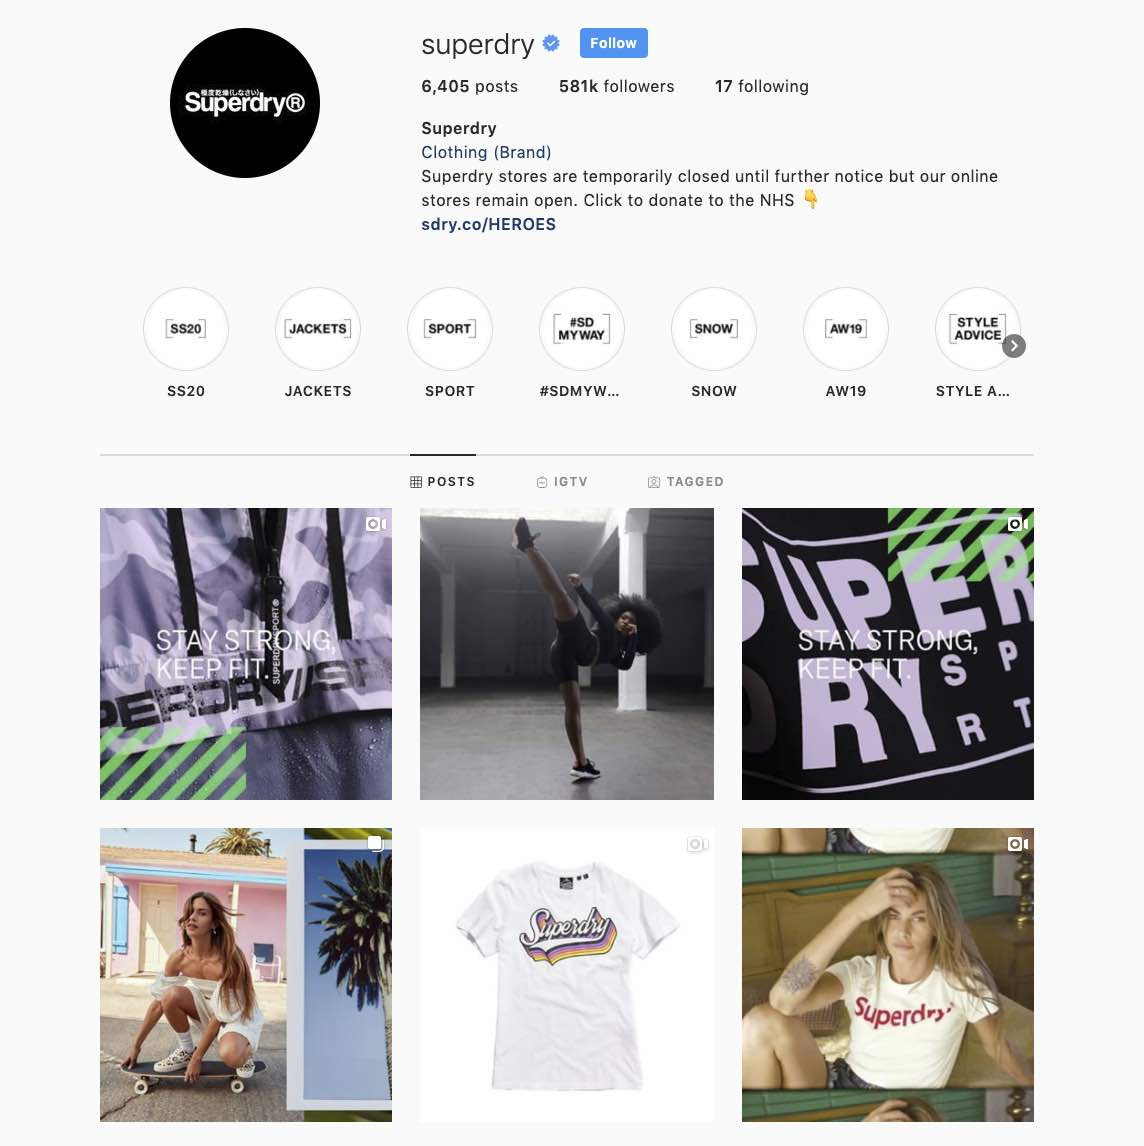 Clothing brand Superdry cultivates a cohesive brand image with visual digital marketing content on social media.